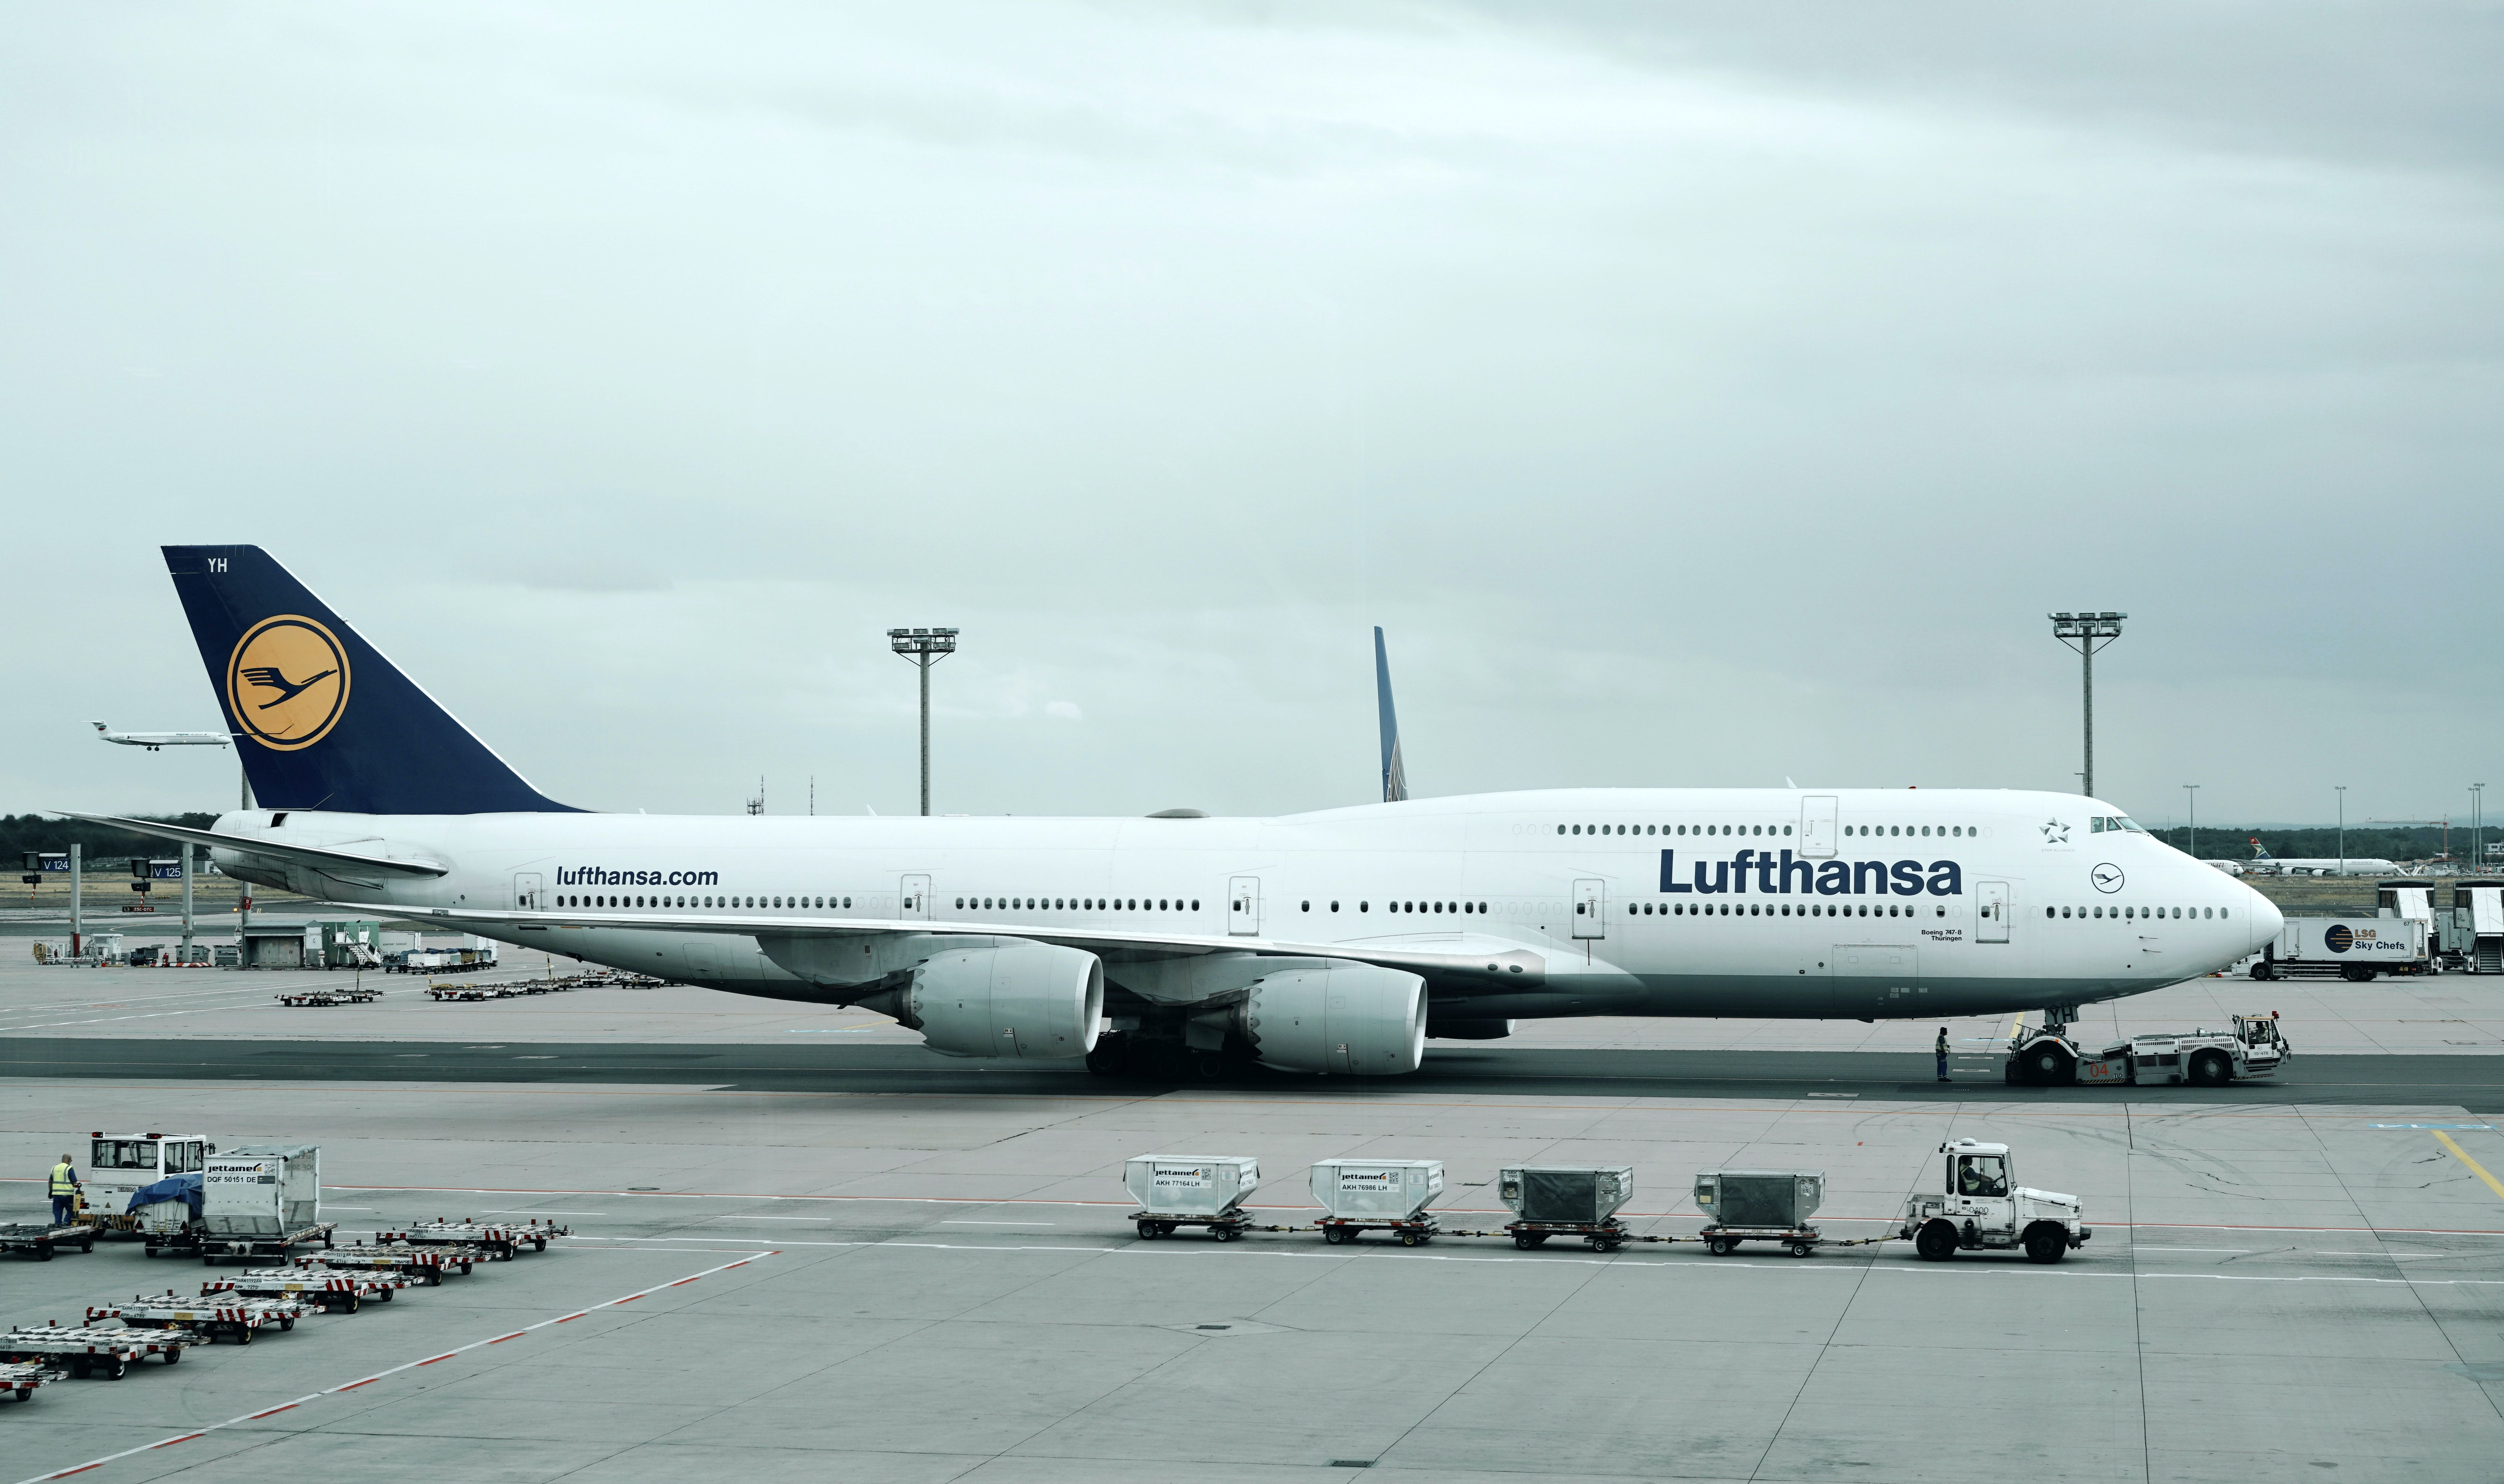 eSky Group strengthens cooperation with Lufthansa Group airlines